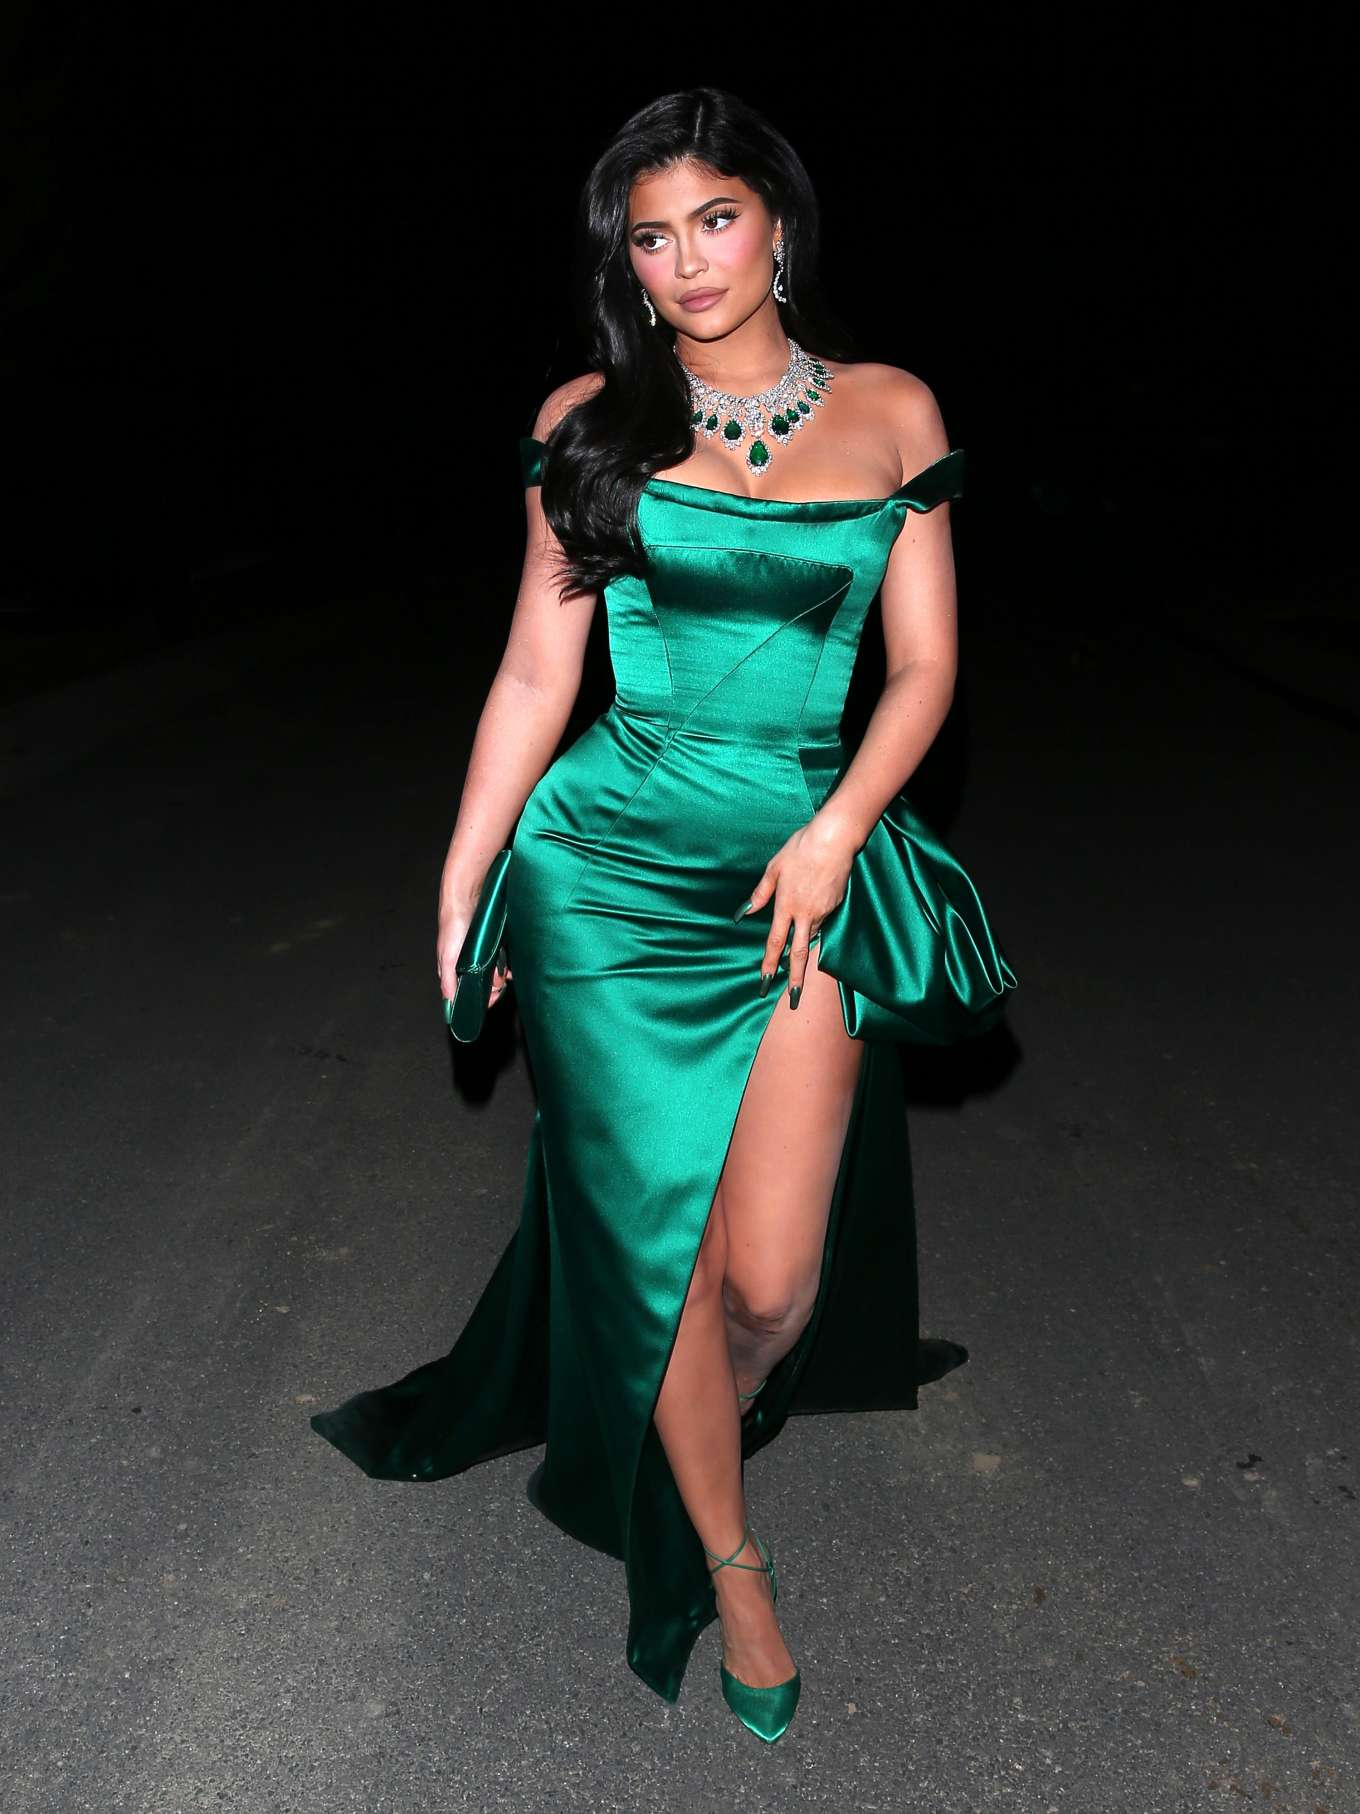 Kylie Jenner in Green Satin Dress - Going to the Kardashian's Christmas Eve bash in LA